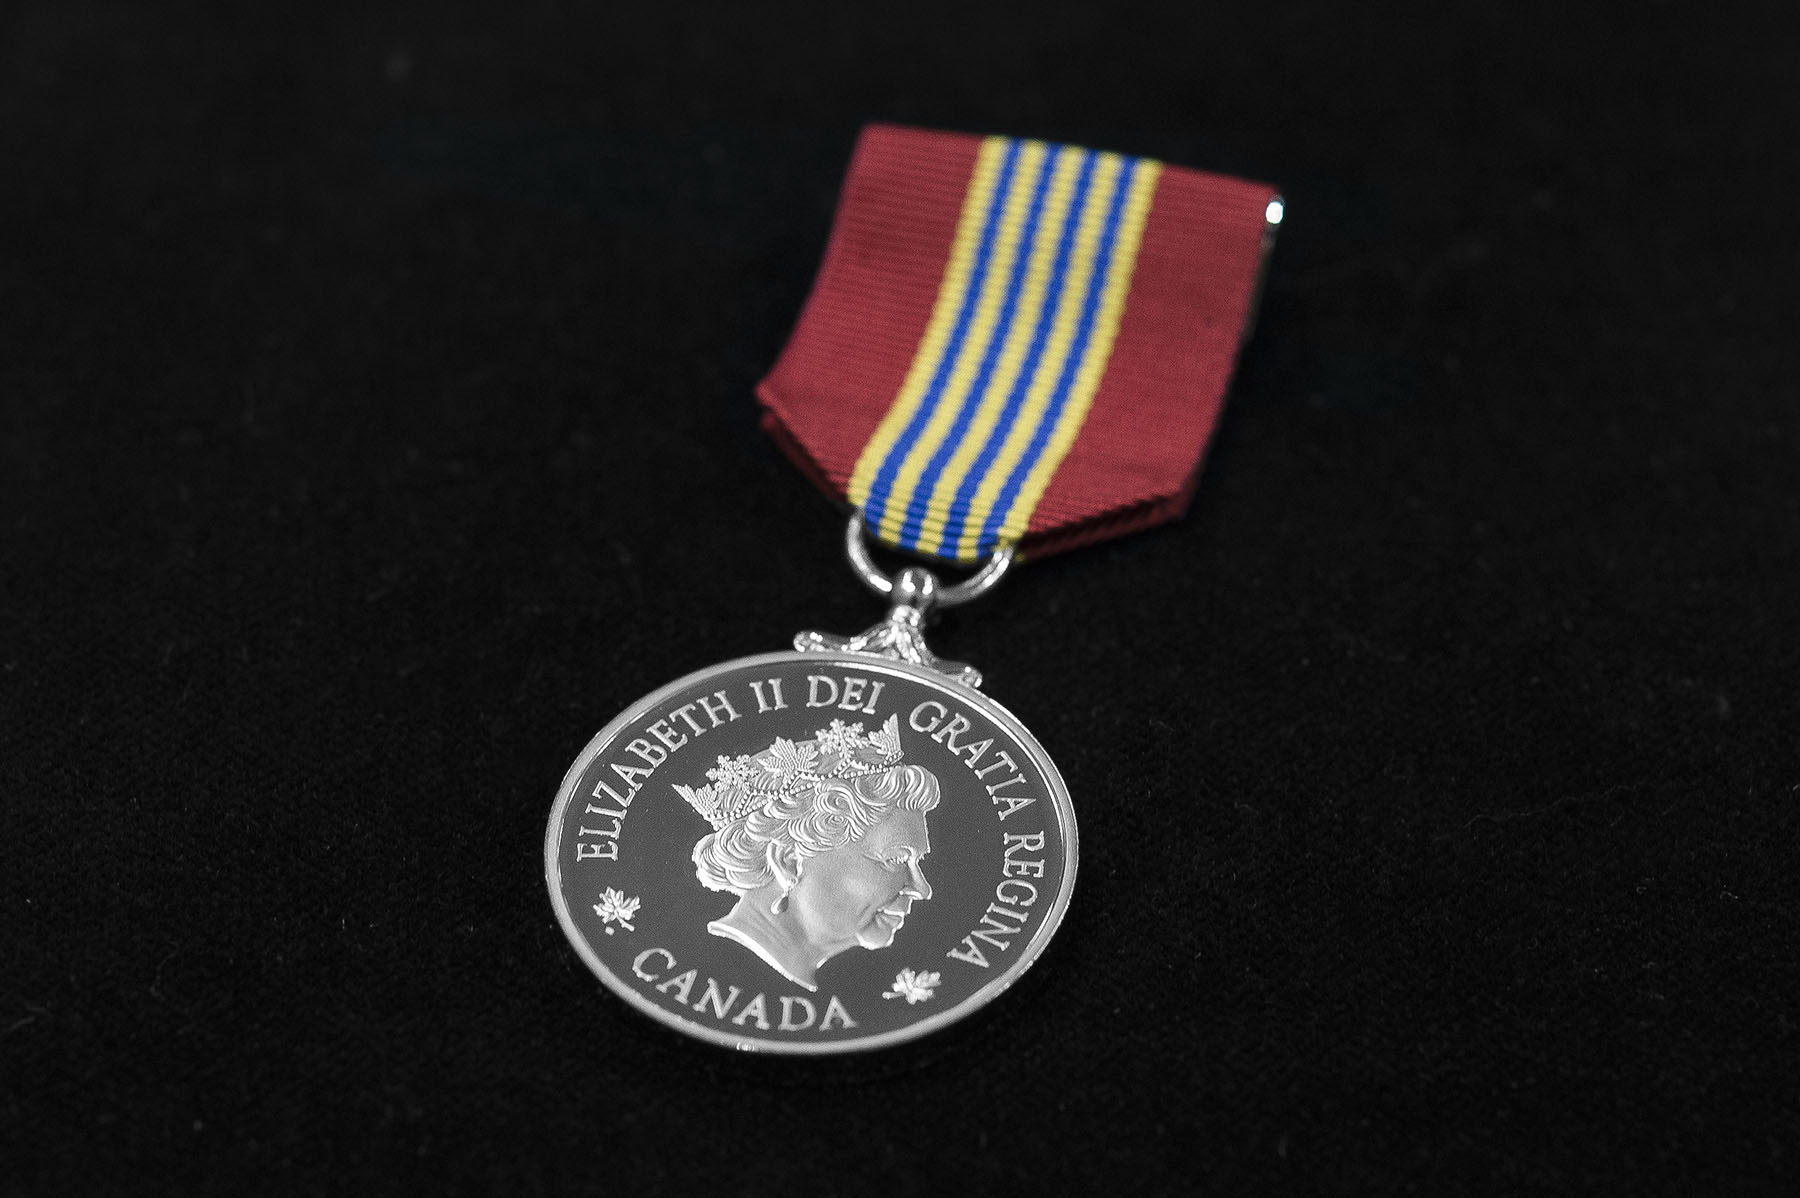 The Medal for Volunteers recognizes the exceptional volunteer achievements of Canadians from across the country in a wide range of fields. As an official Canadian honour, it also pays tribute to the dedication and exemplary commitment of volunteers.